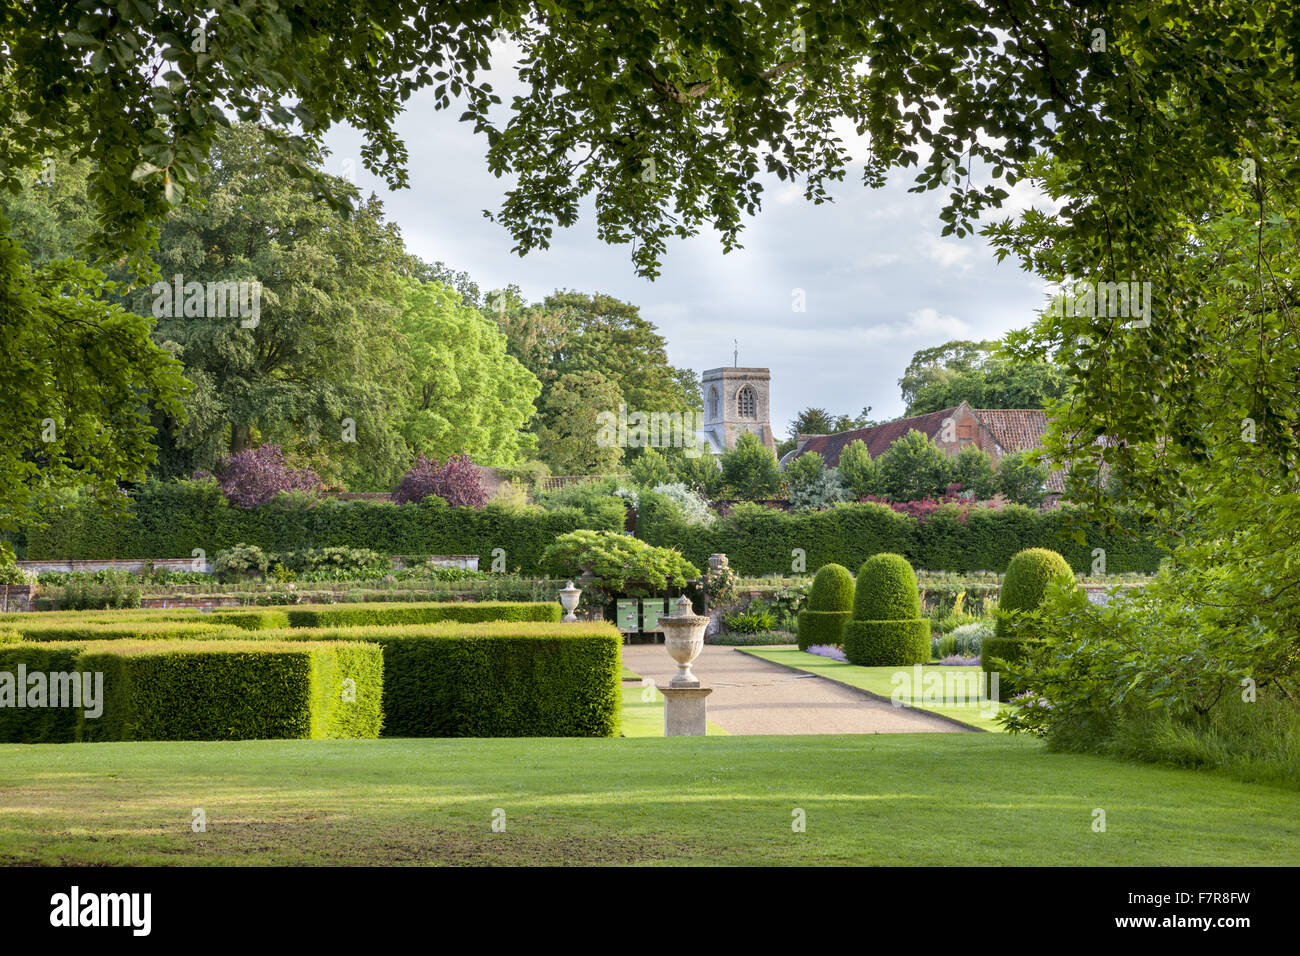 The garden, with St Andrew's Church in the background, at Blickling Estate, Norfolk. Blickling is a turreted - Stock Image